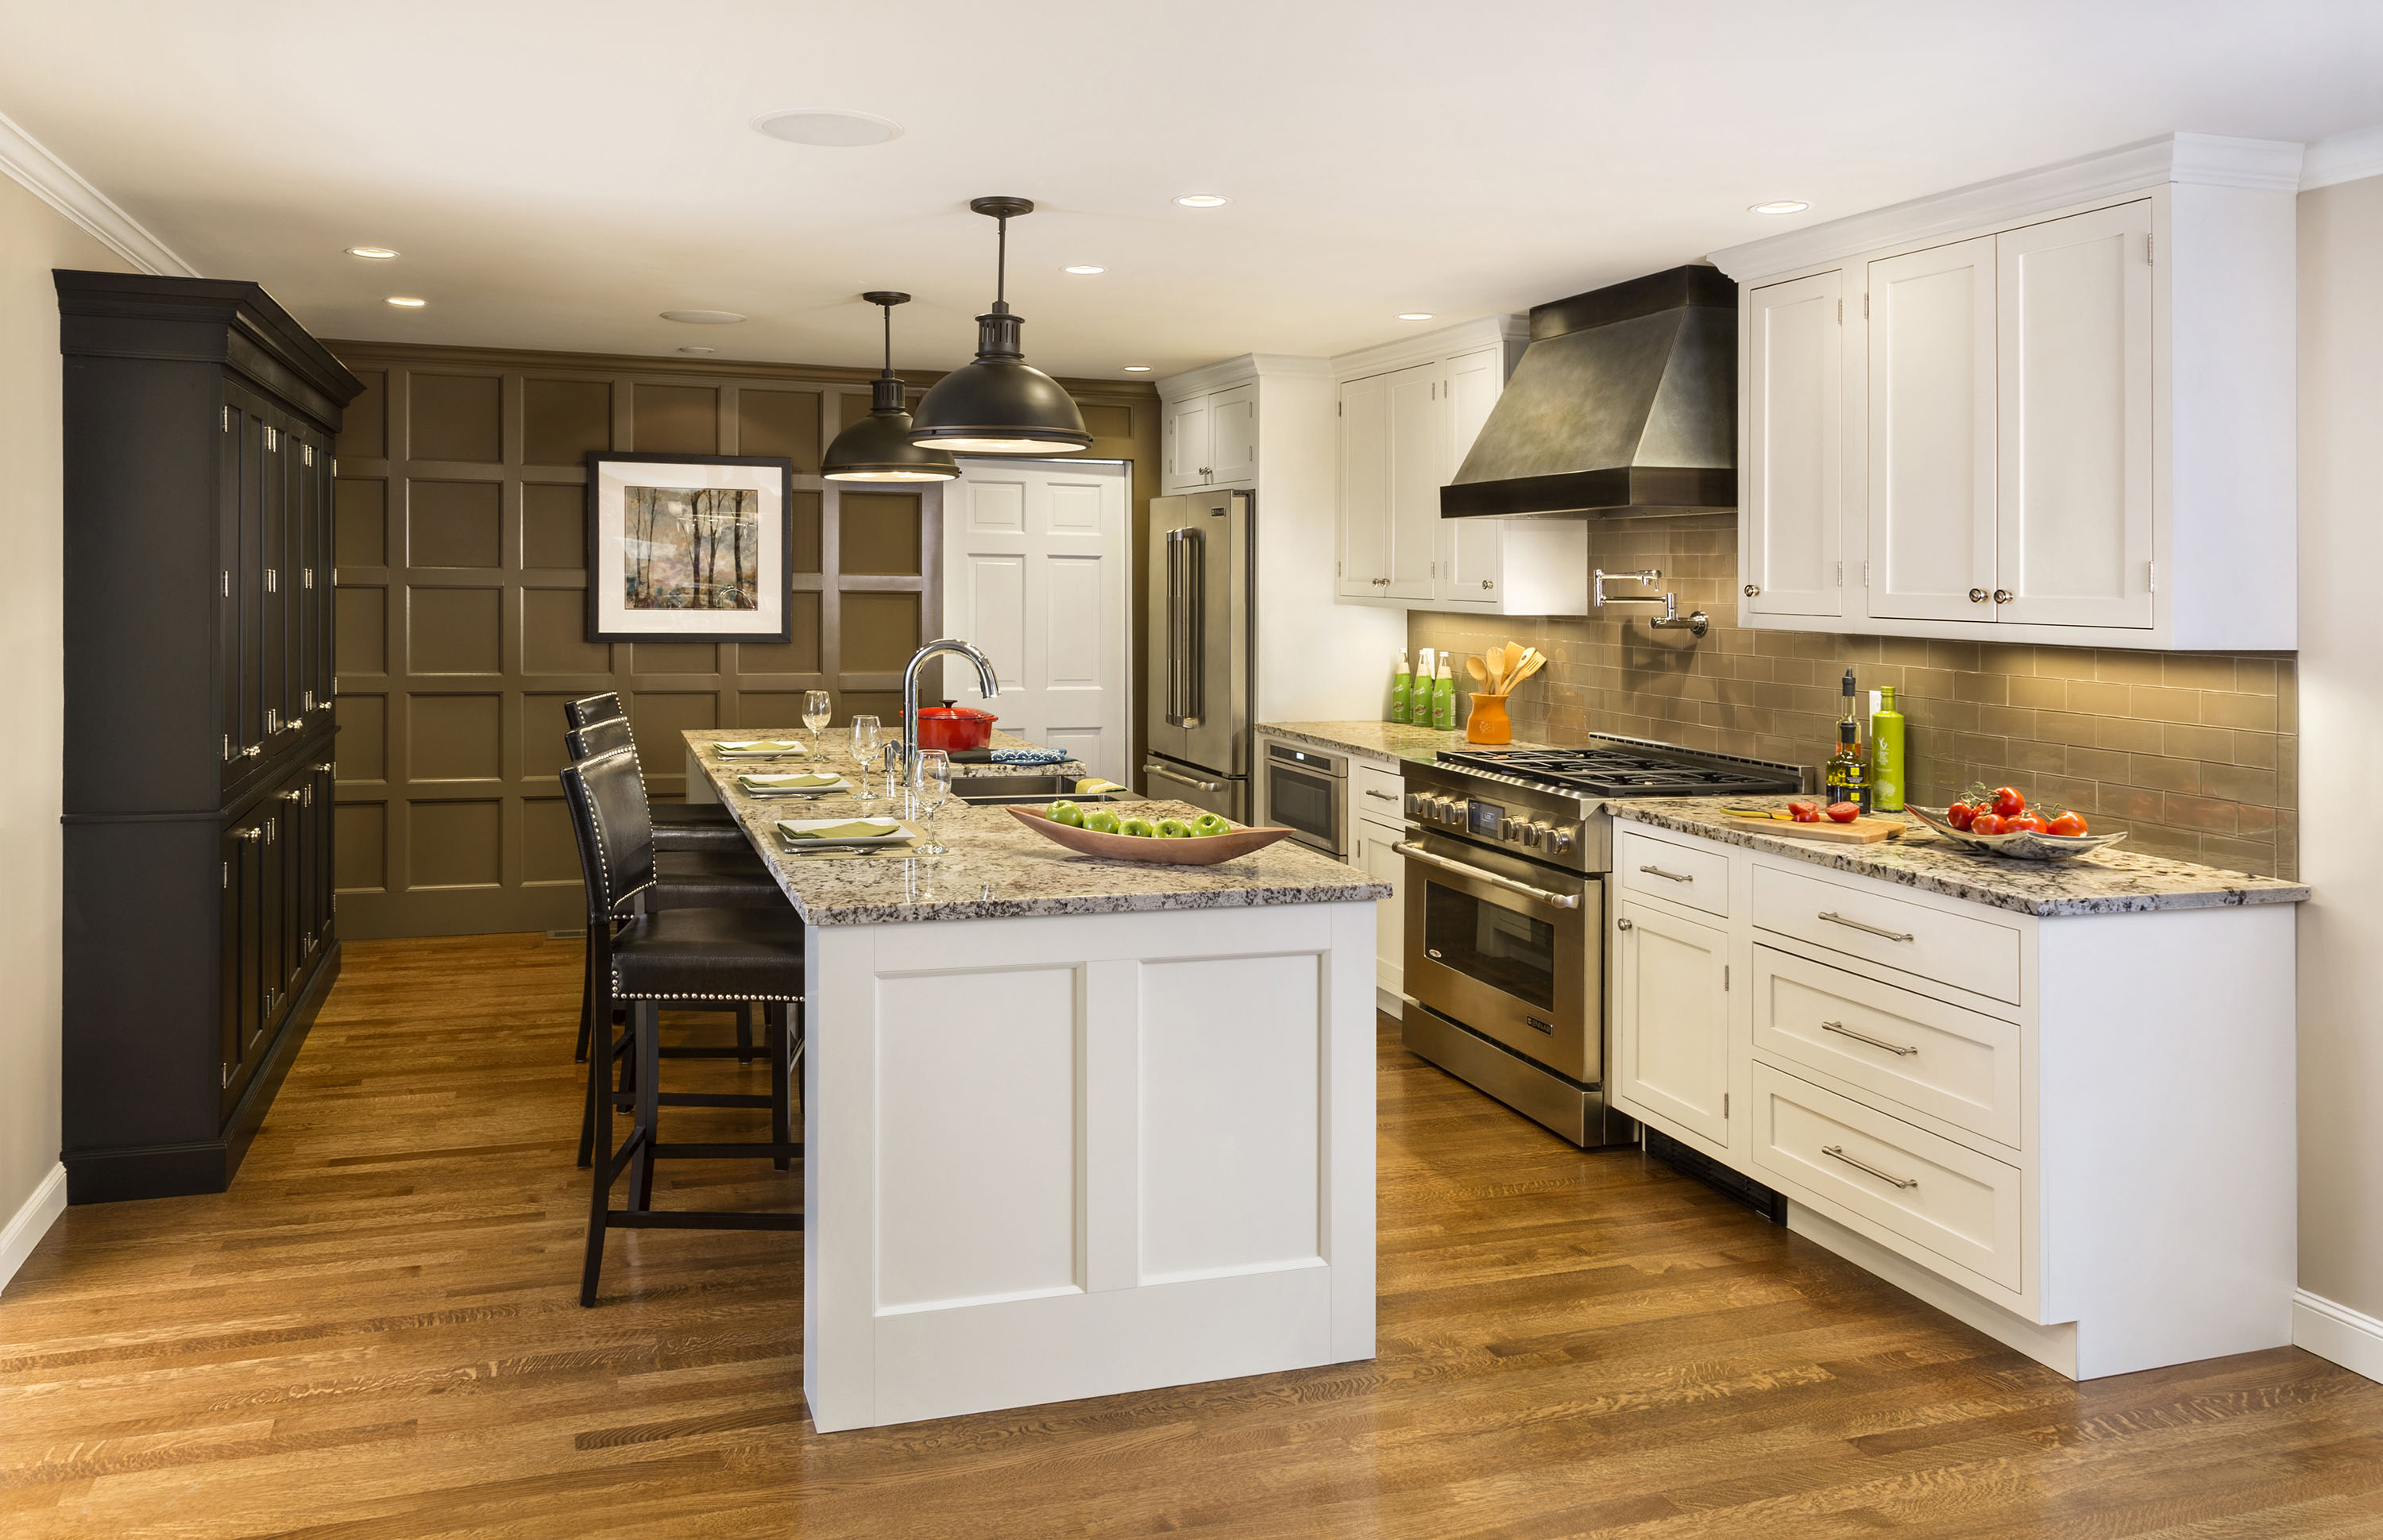 Thomasville Cabinet | Thomasville Cabinets Reviews | Thomasville Cabinets